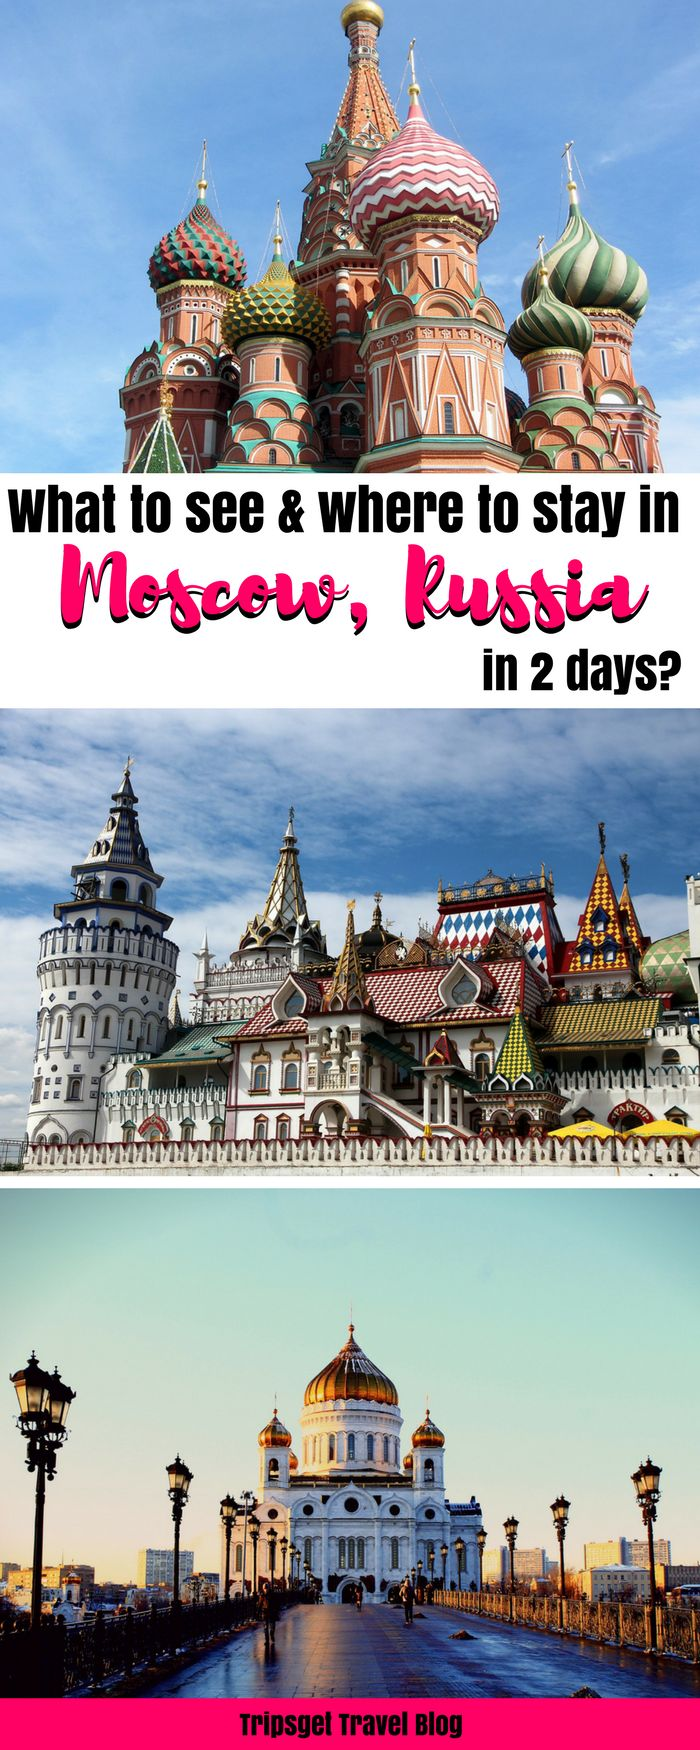 What to see in Moscow Russia in 2 days